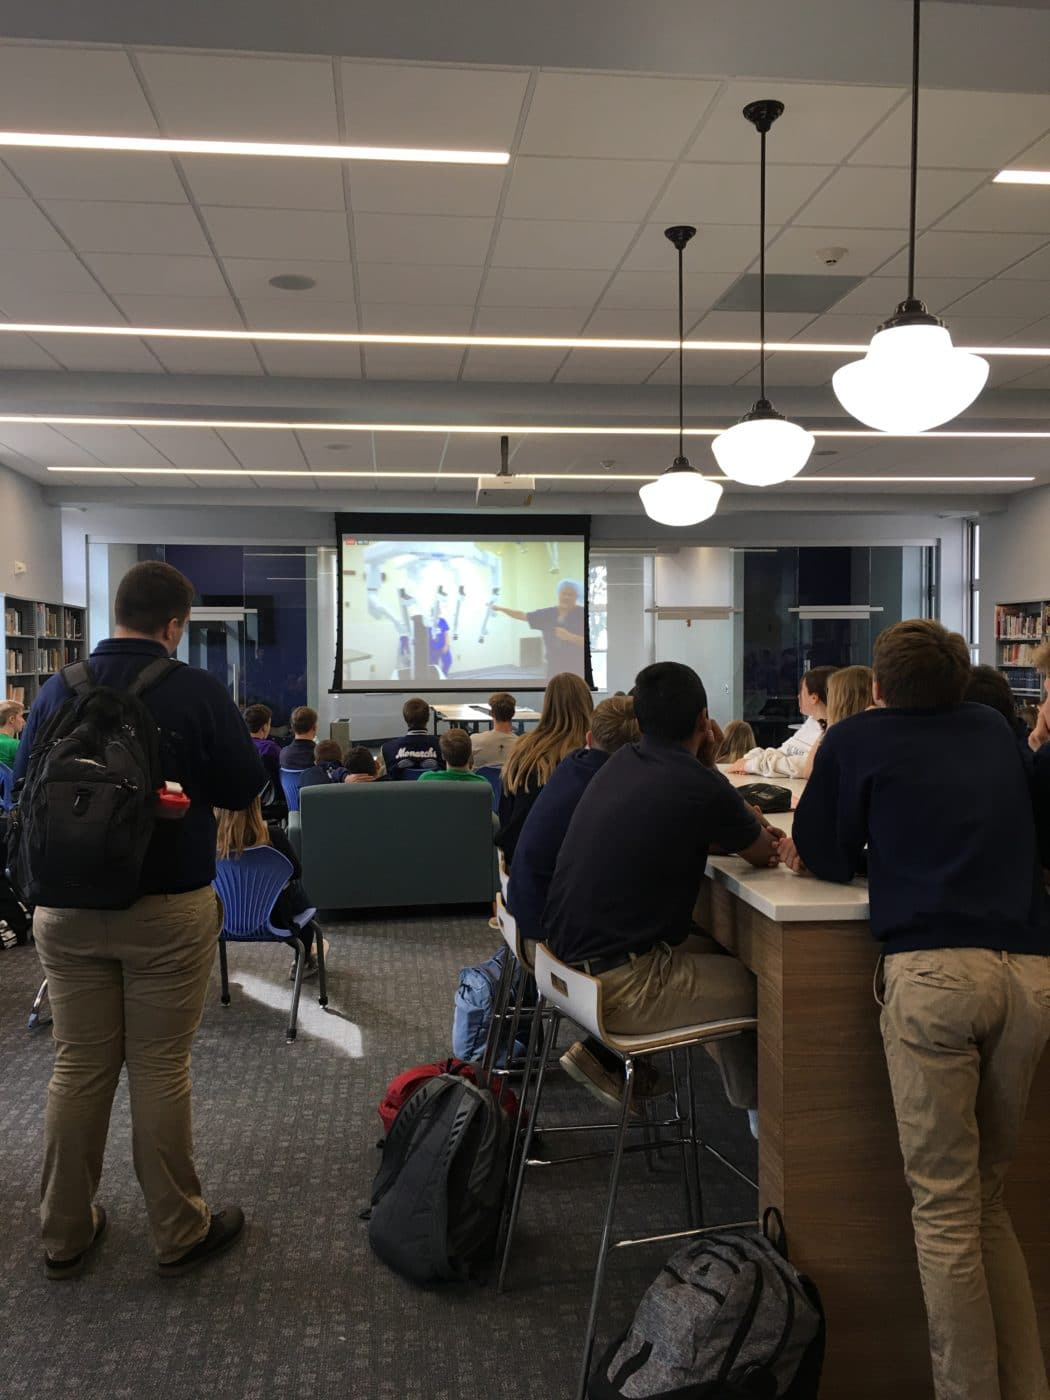 Courtesy Photo | Students at Thomas More Prep-Marian Junior/Senior High in Hays watch the live demonstration in their new learning commons.